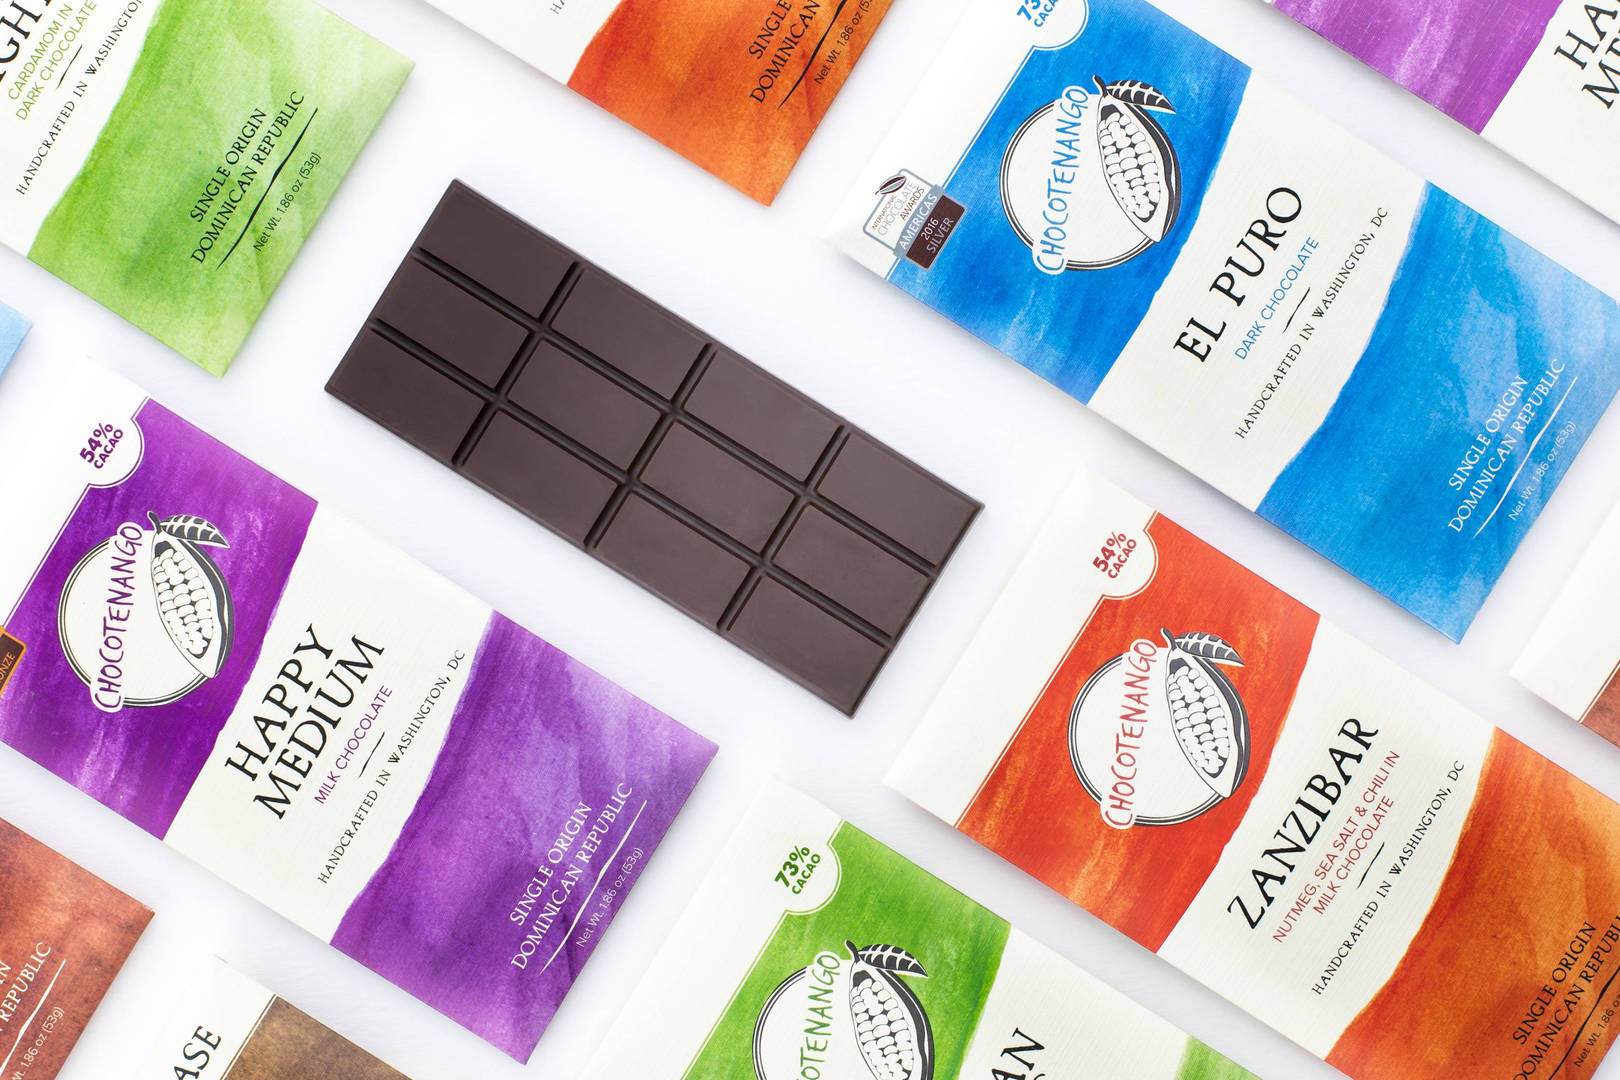 Bean to bar chocolates made in Washington DC